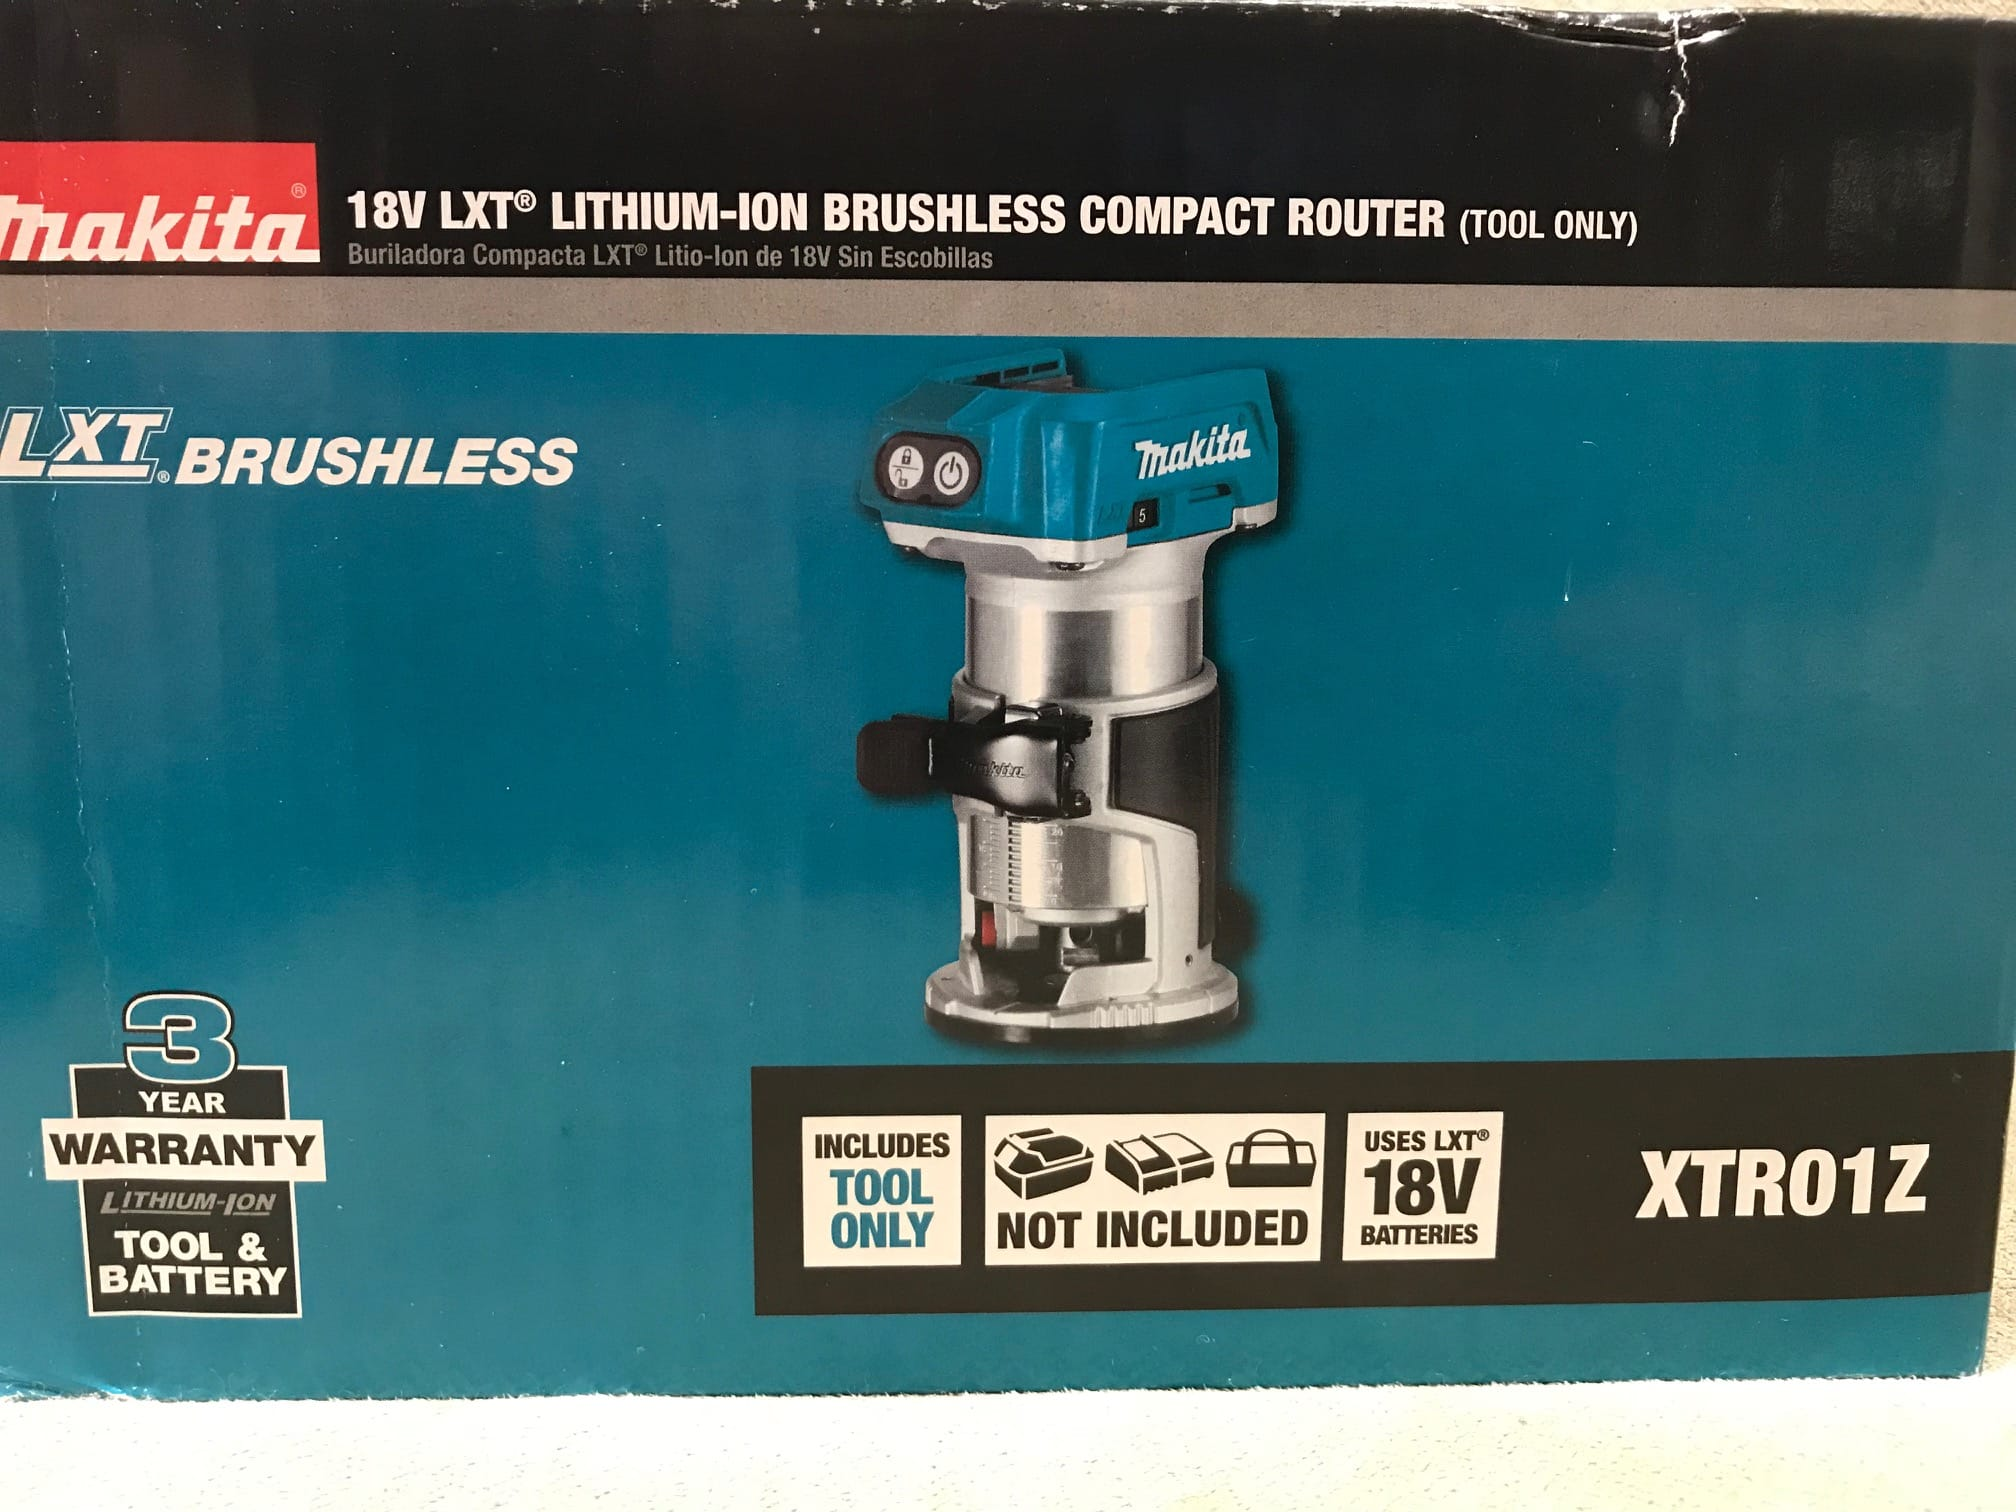 Makita XTR01Z Router (Wood) Bare Tool on clearance for $65.00 at Home Depot YMMV B&M